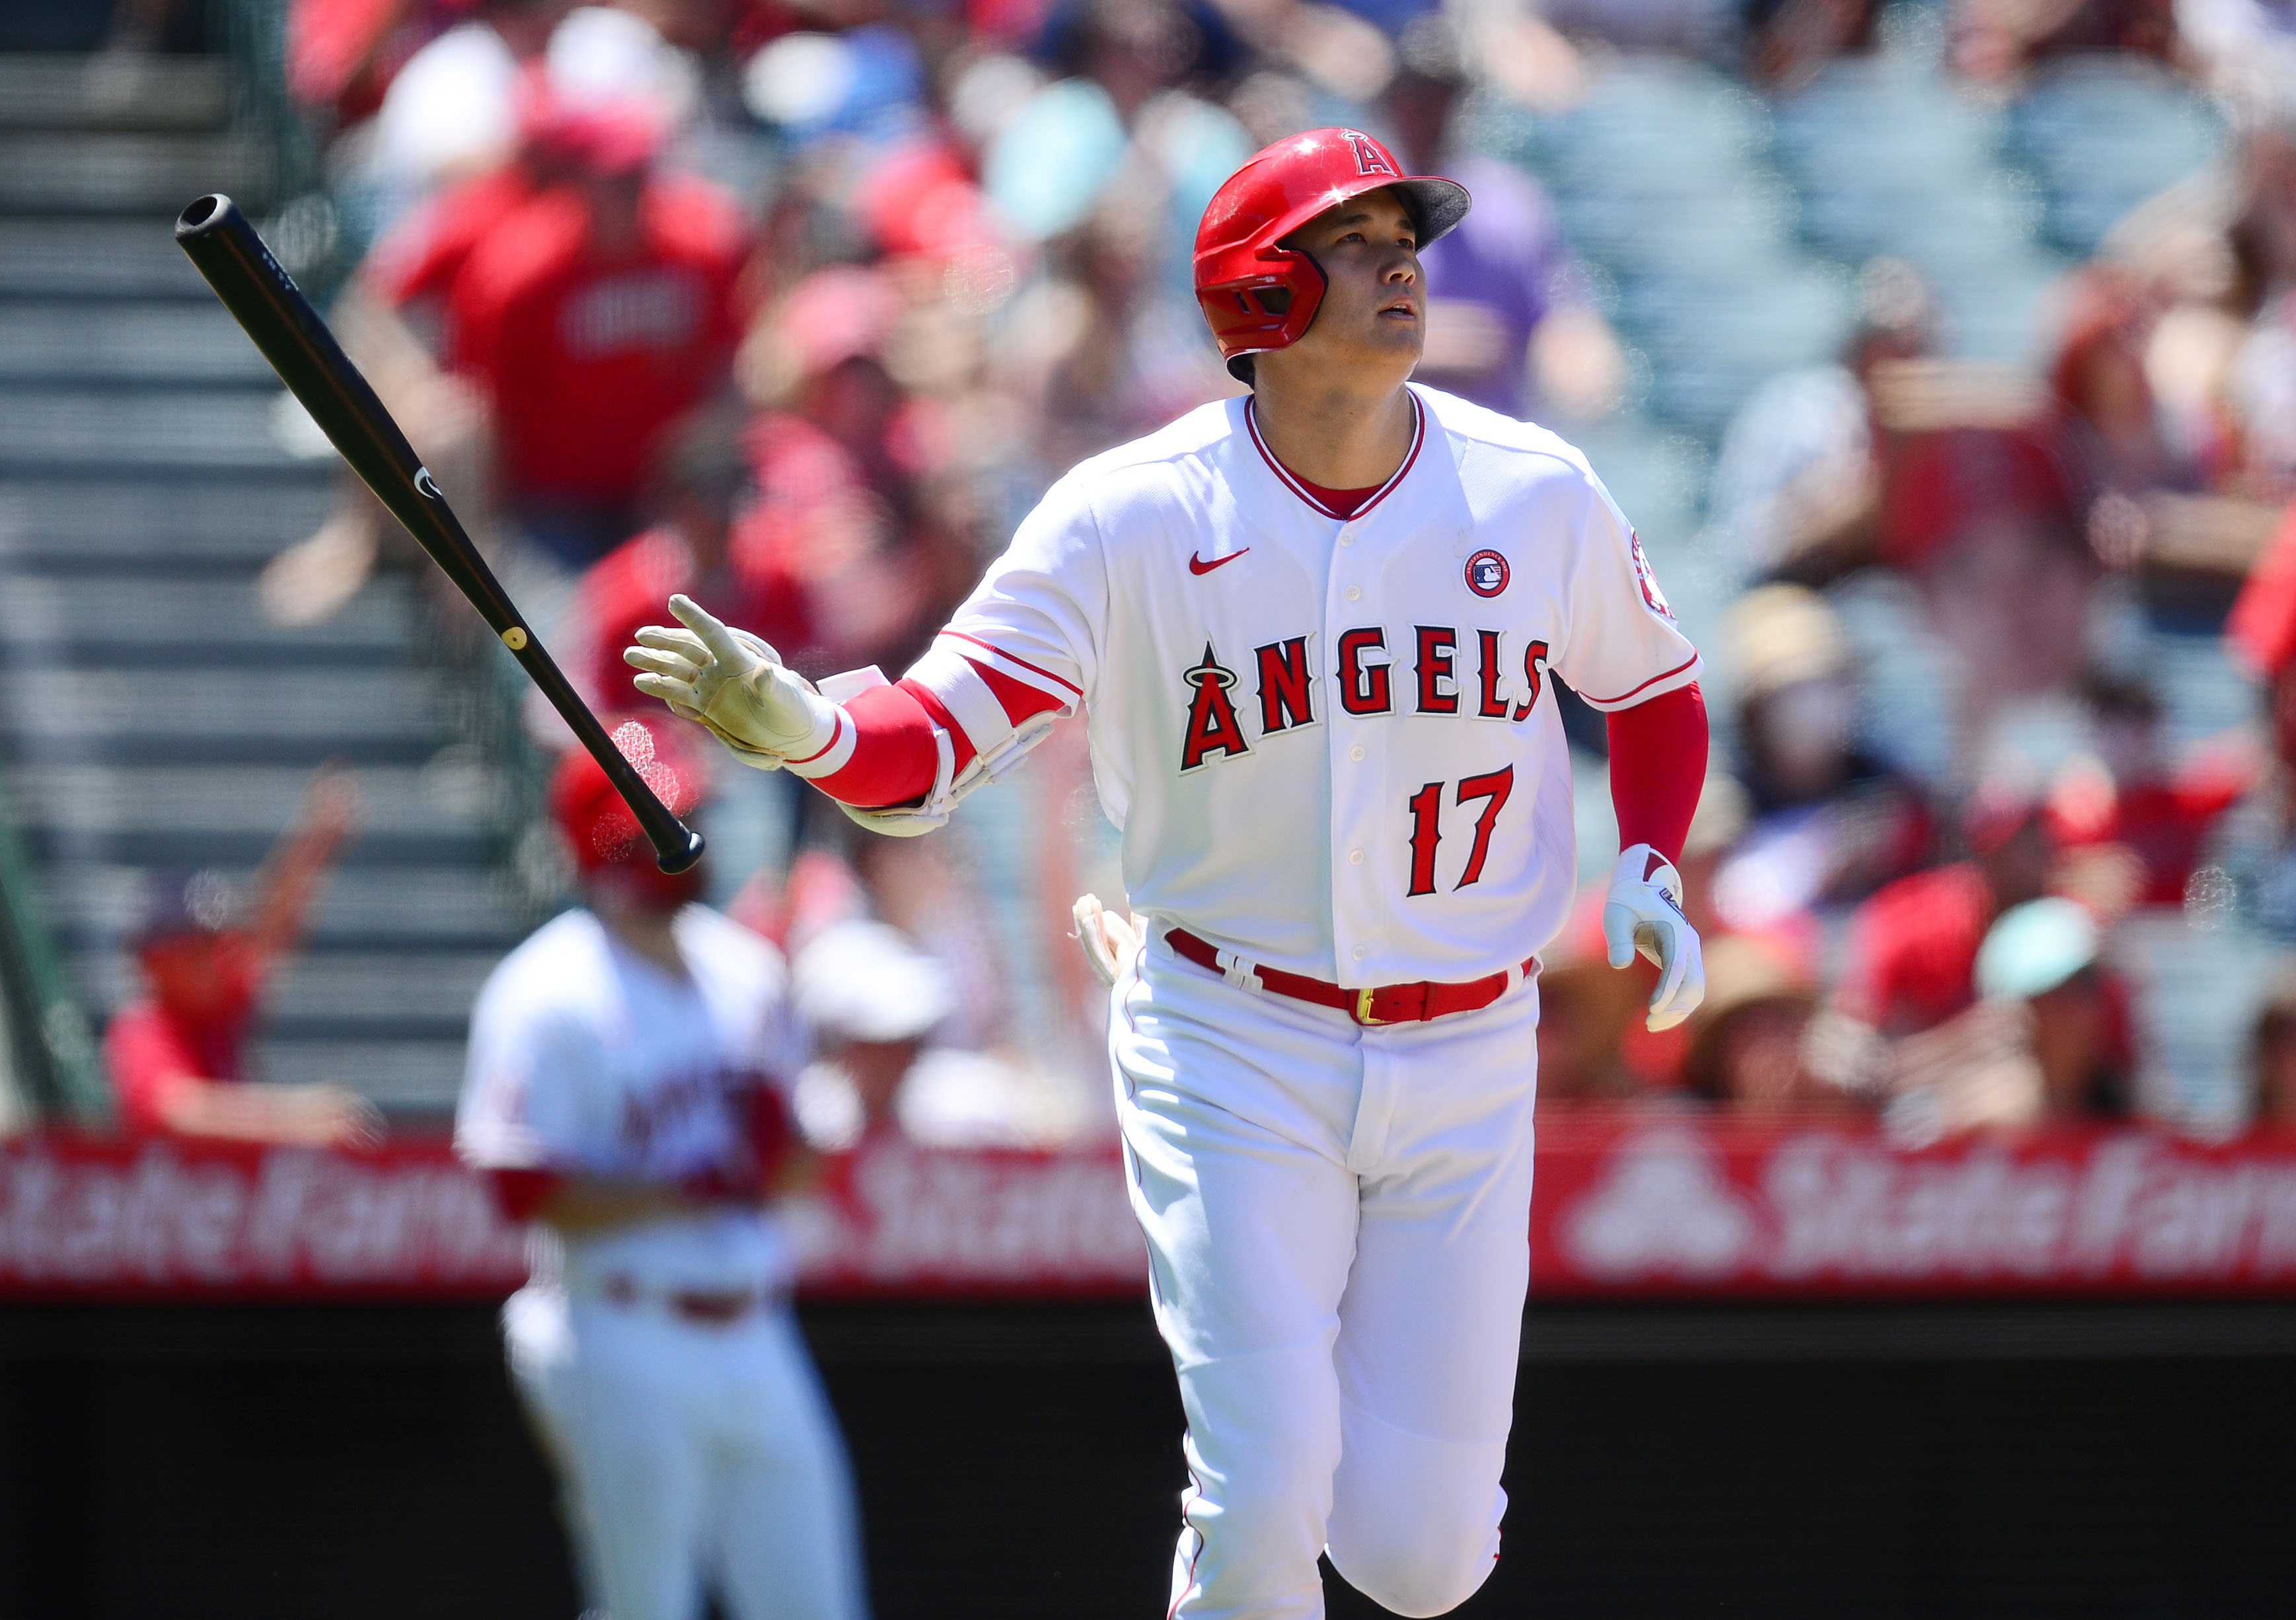 Shohei Ohtani sets MLB record for most home runs in a season by a Japanese-born player